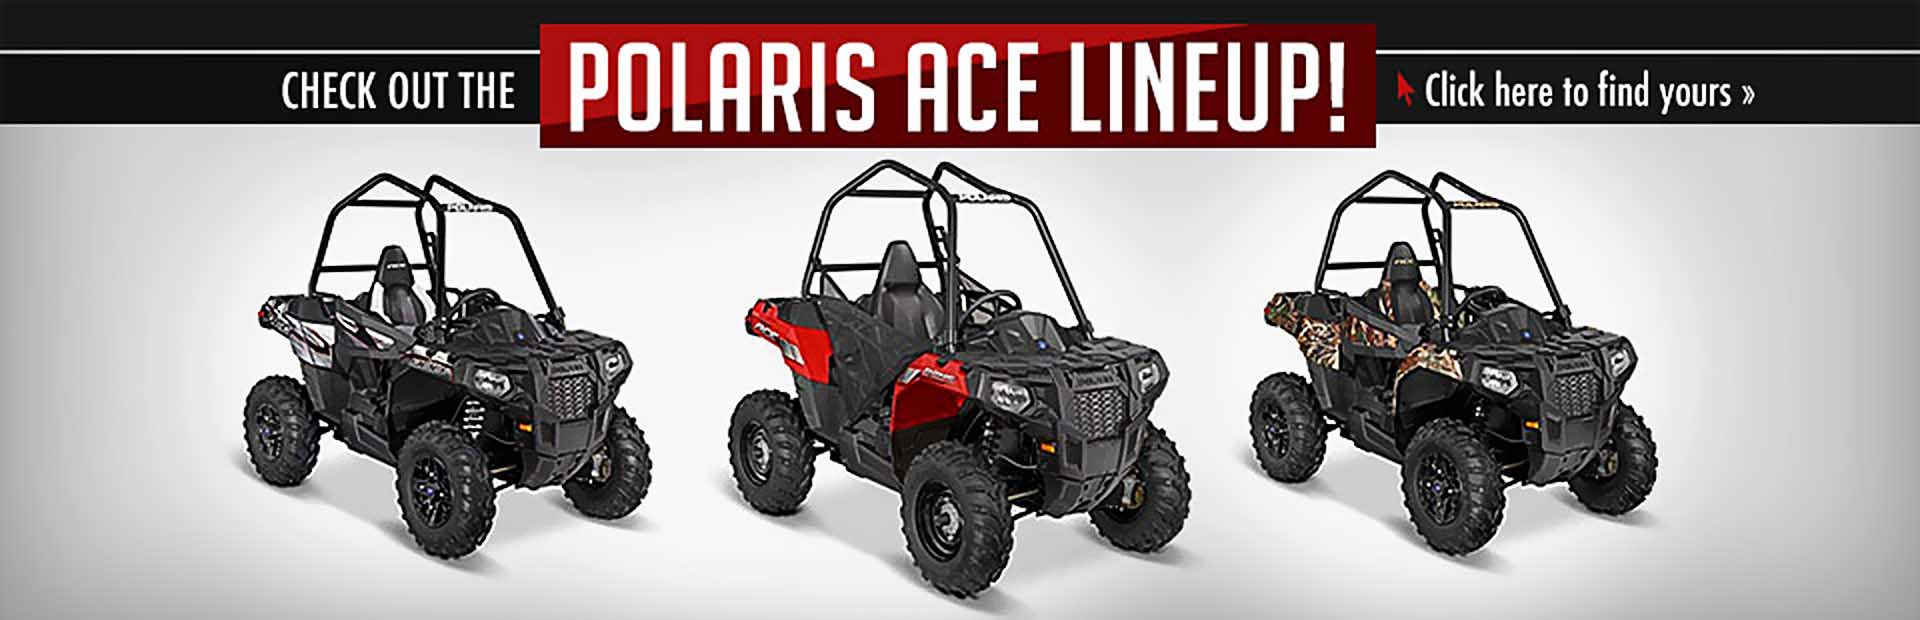 Click here to check out the Polaris ACE lineup!